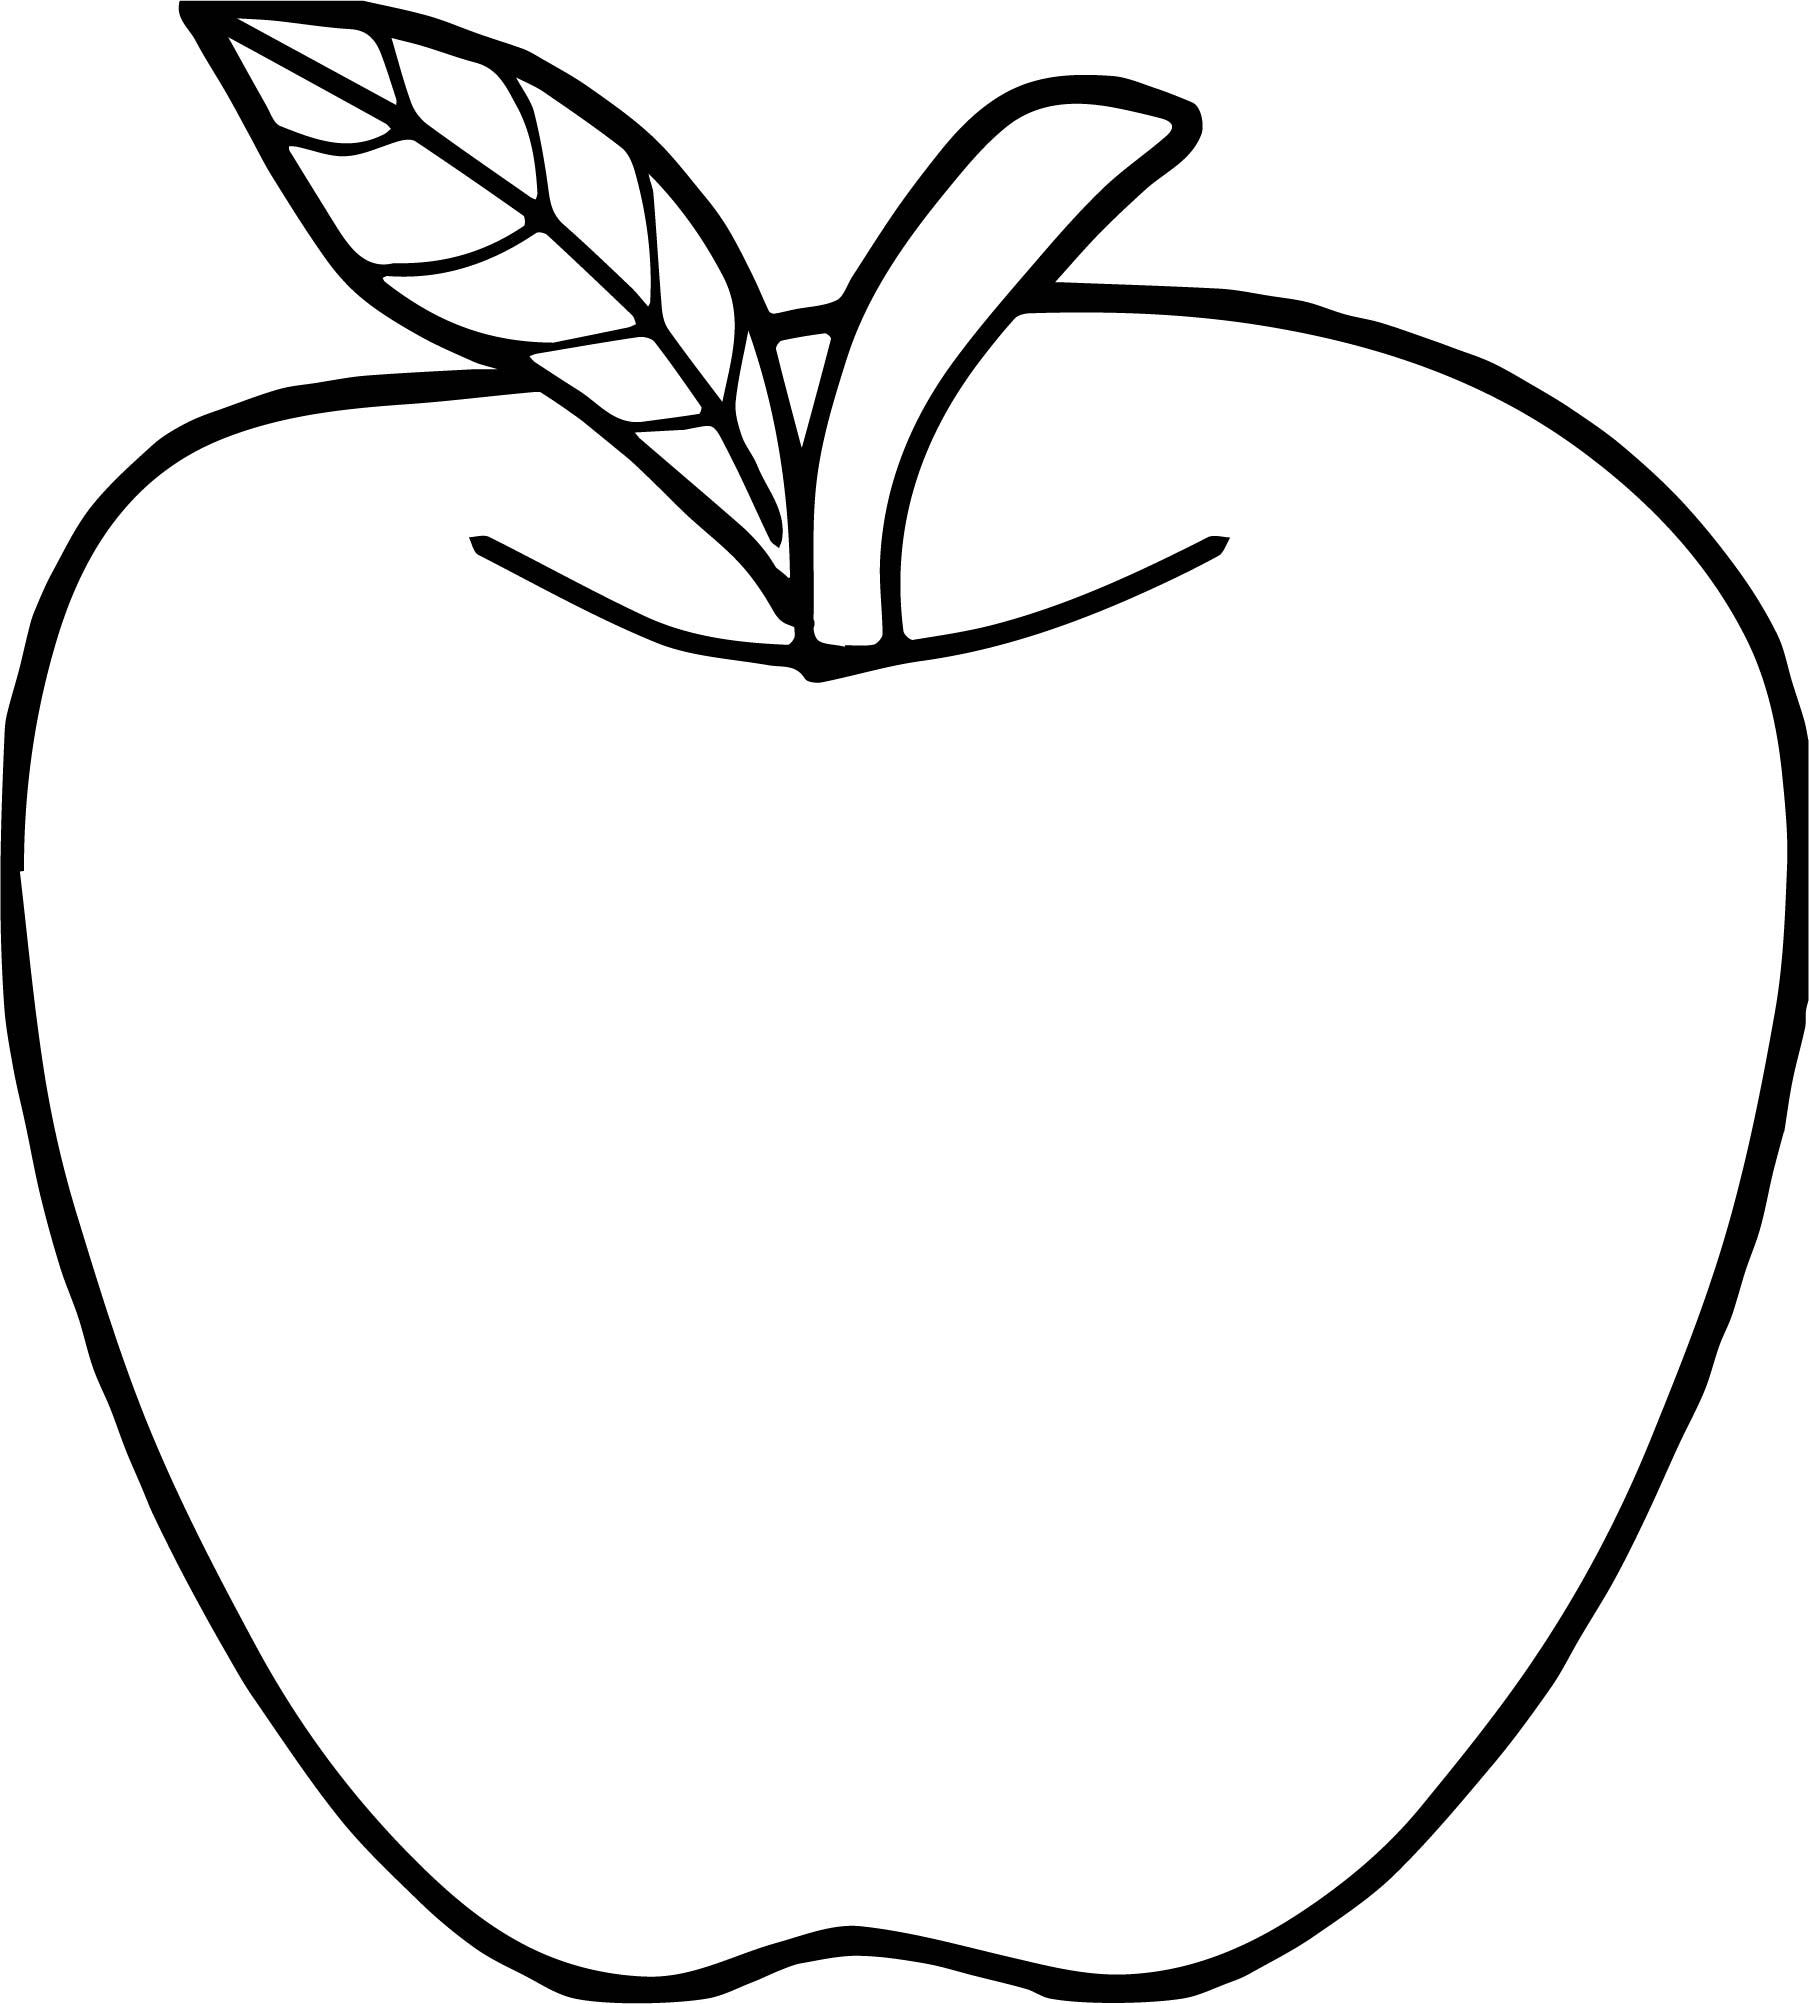 apple coloring for kids free printable apple coloring pages for kids for kids apple coloring